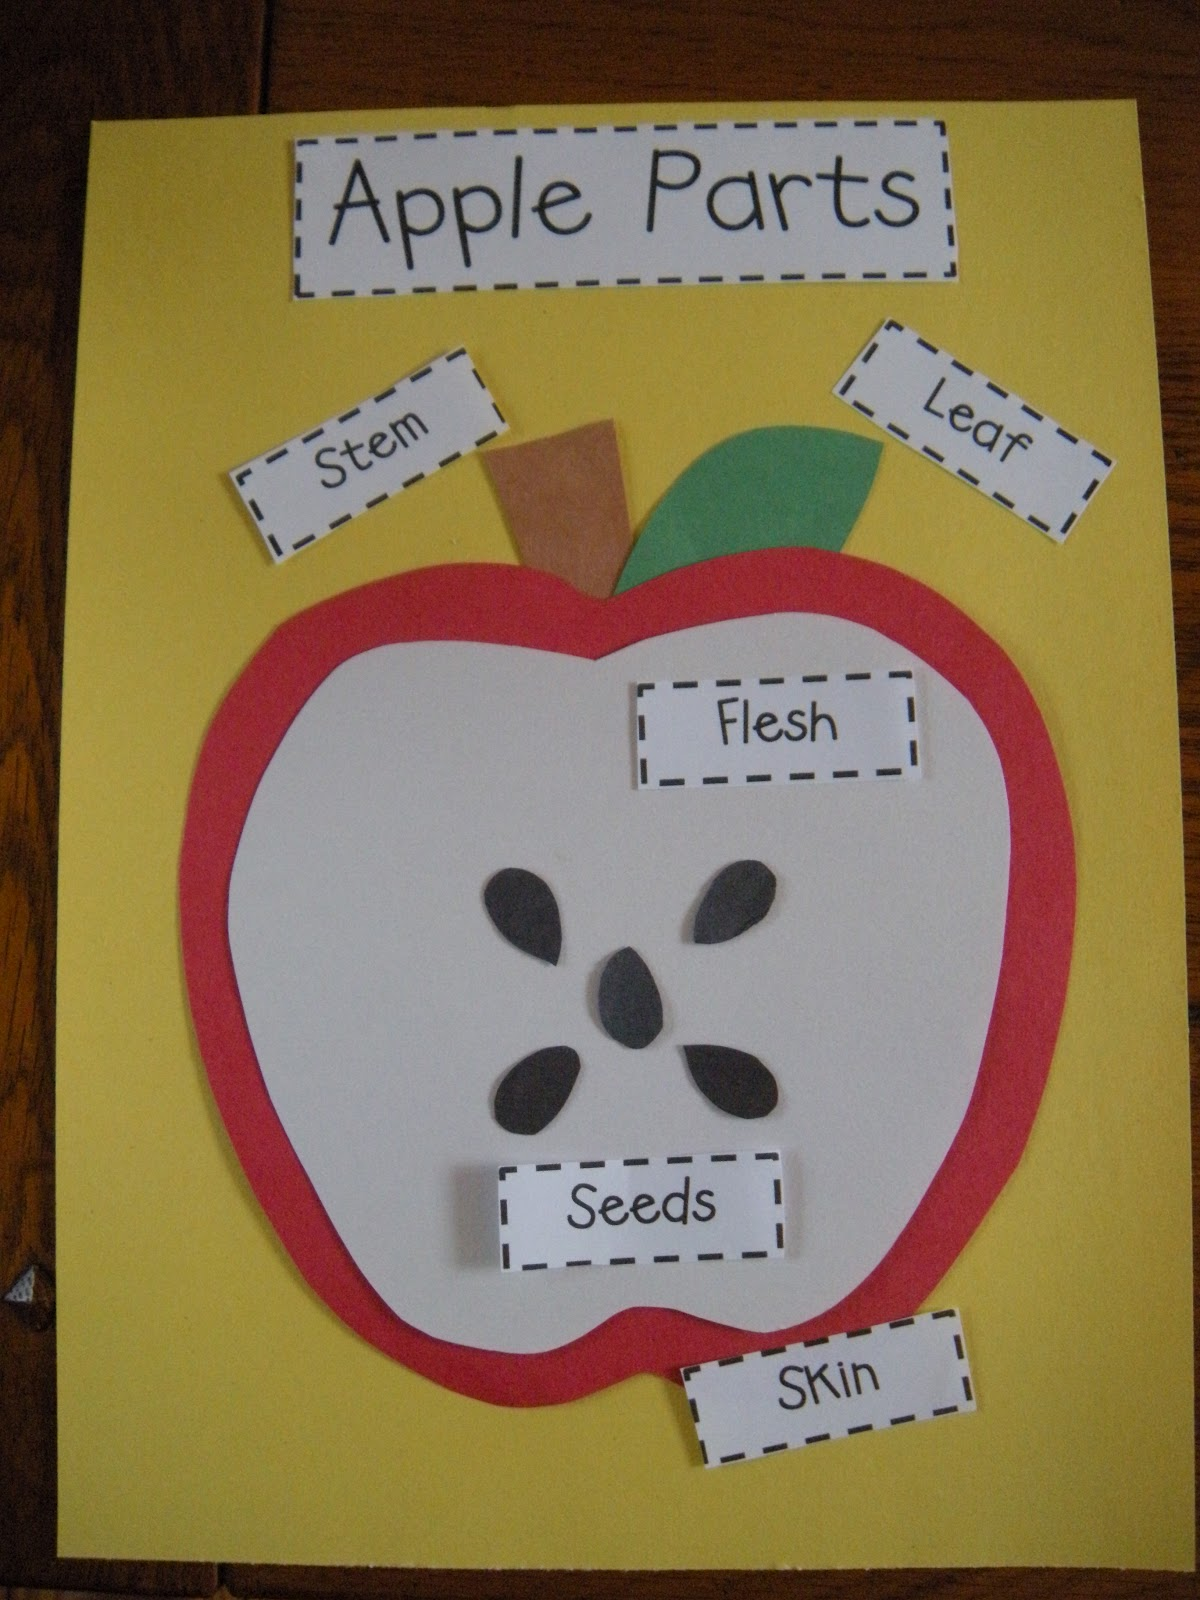 The Adventures of Miss Elisabeth: Bushels of Fun with Apples!